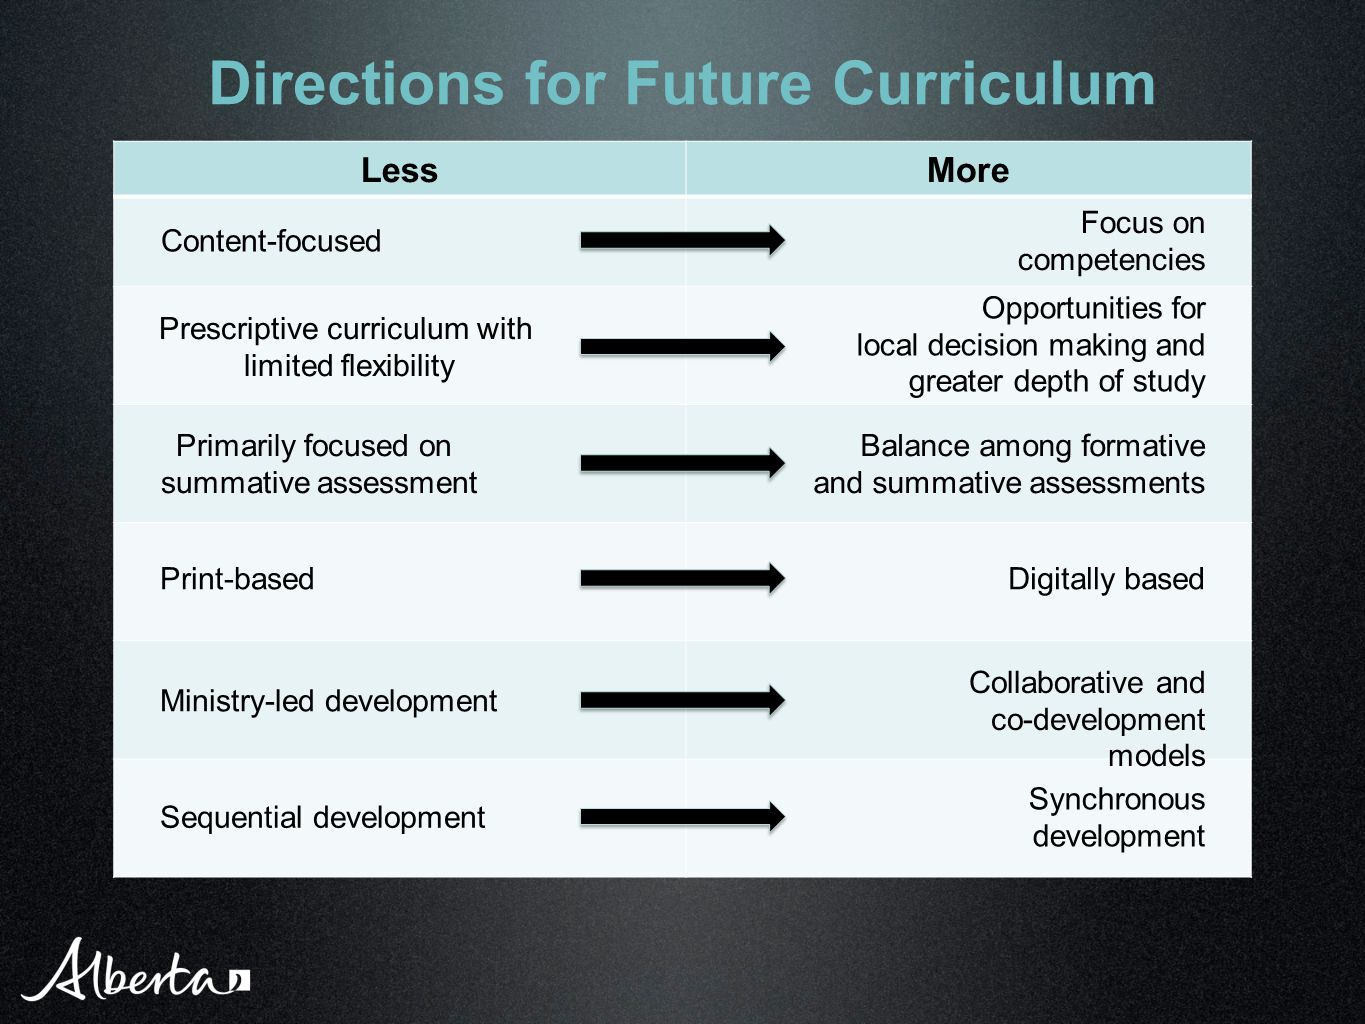 LessMore Directions for Future Curriculum Content-focused Focus on competencies Opportunities for local decision making and greater depth of study Prescriptive curriculum with limited flexibility Primarily focused on summative assessment Print-based Ministry-led development Sequential development Balance among formative and summative assessments Digitally based Collaborative and co-development models Synchronous development